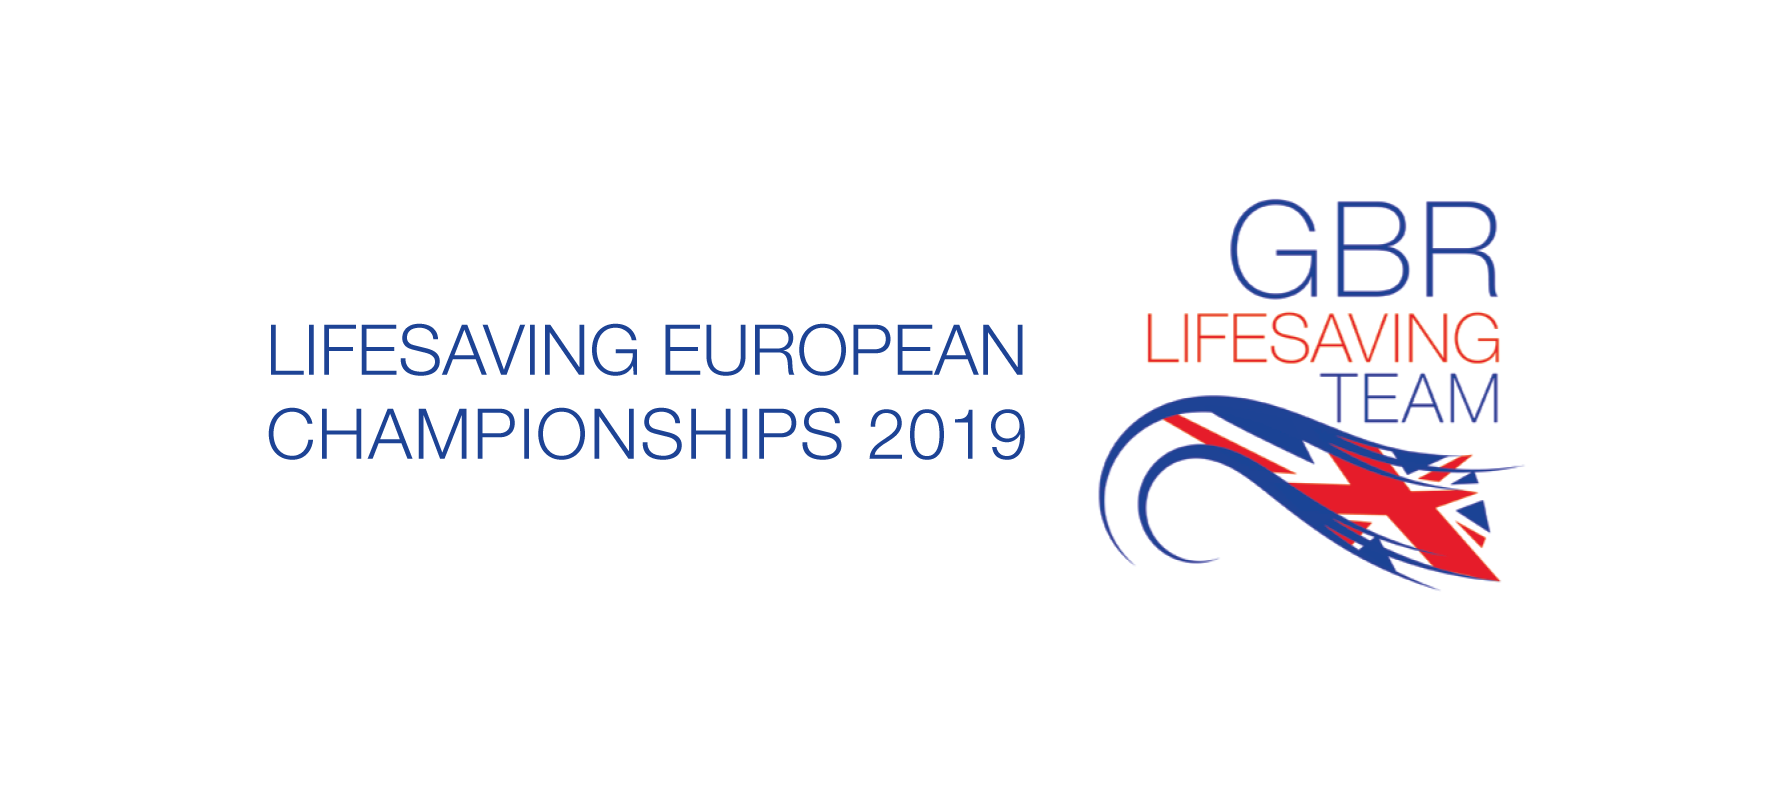 Great Britain Lifesaving announce Open Team to compete at 2019 Lifesaving European Championships in Italy